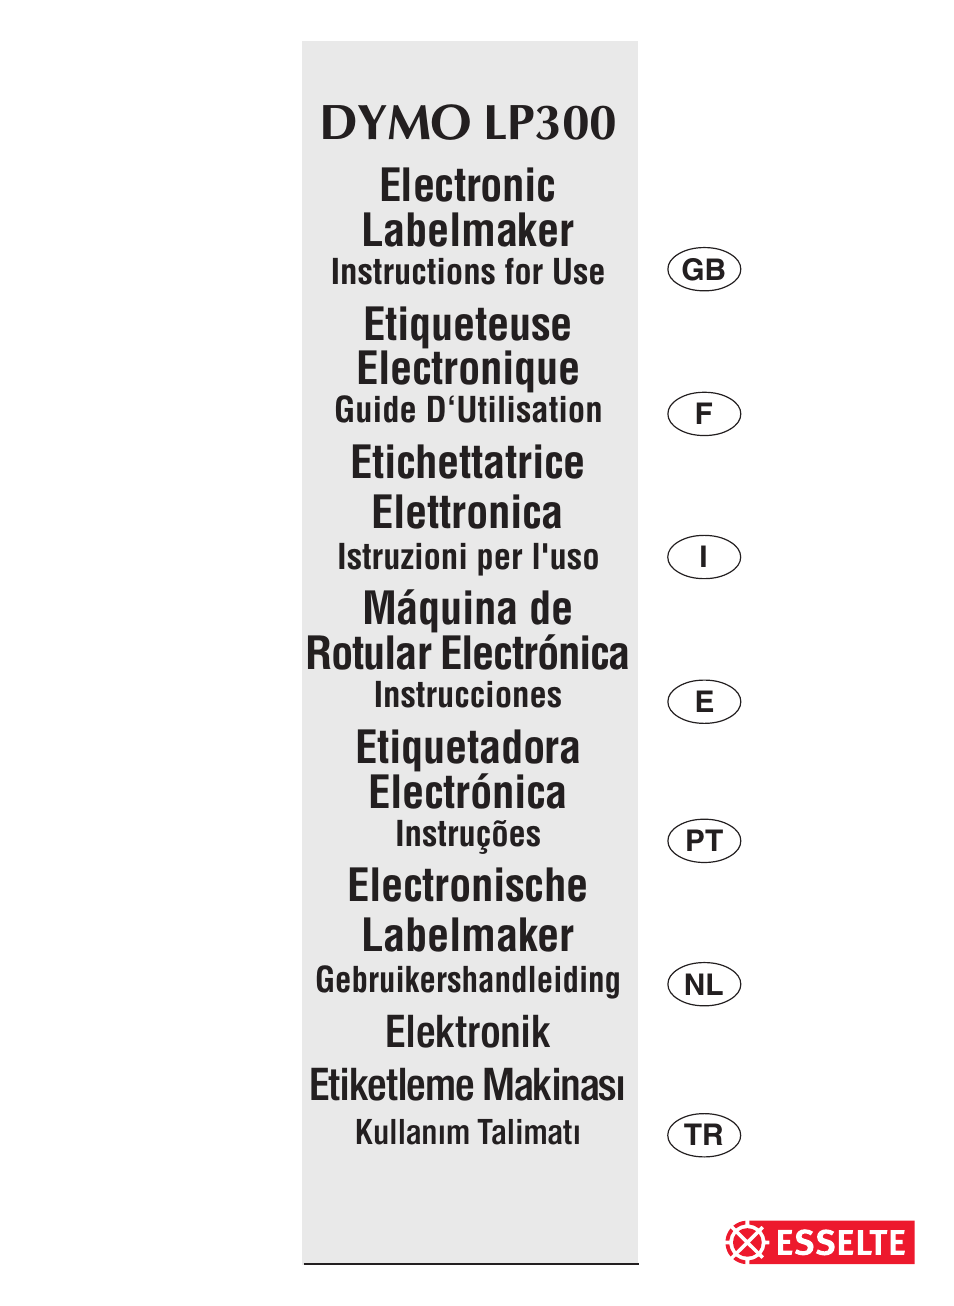 esselte dymo lp300 user manual 12 pages rh manualsdir com Pendaflex Esselte Pendaflex Esselte